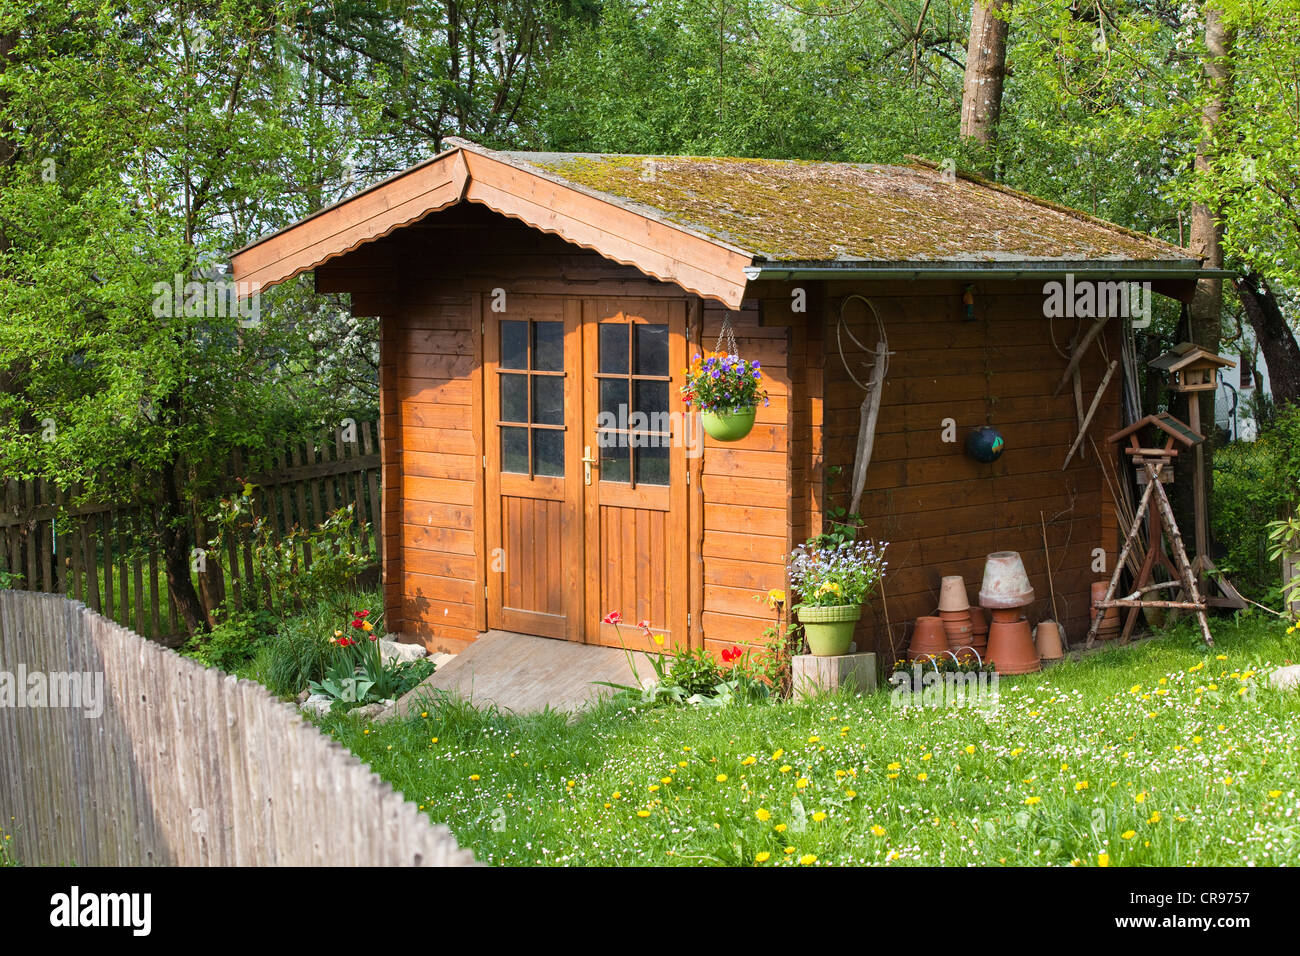 perfect the storage family shed handyman reader garden image wooden plans outdoors sheds project